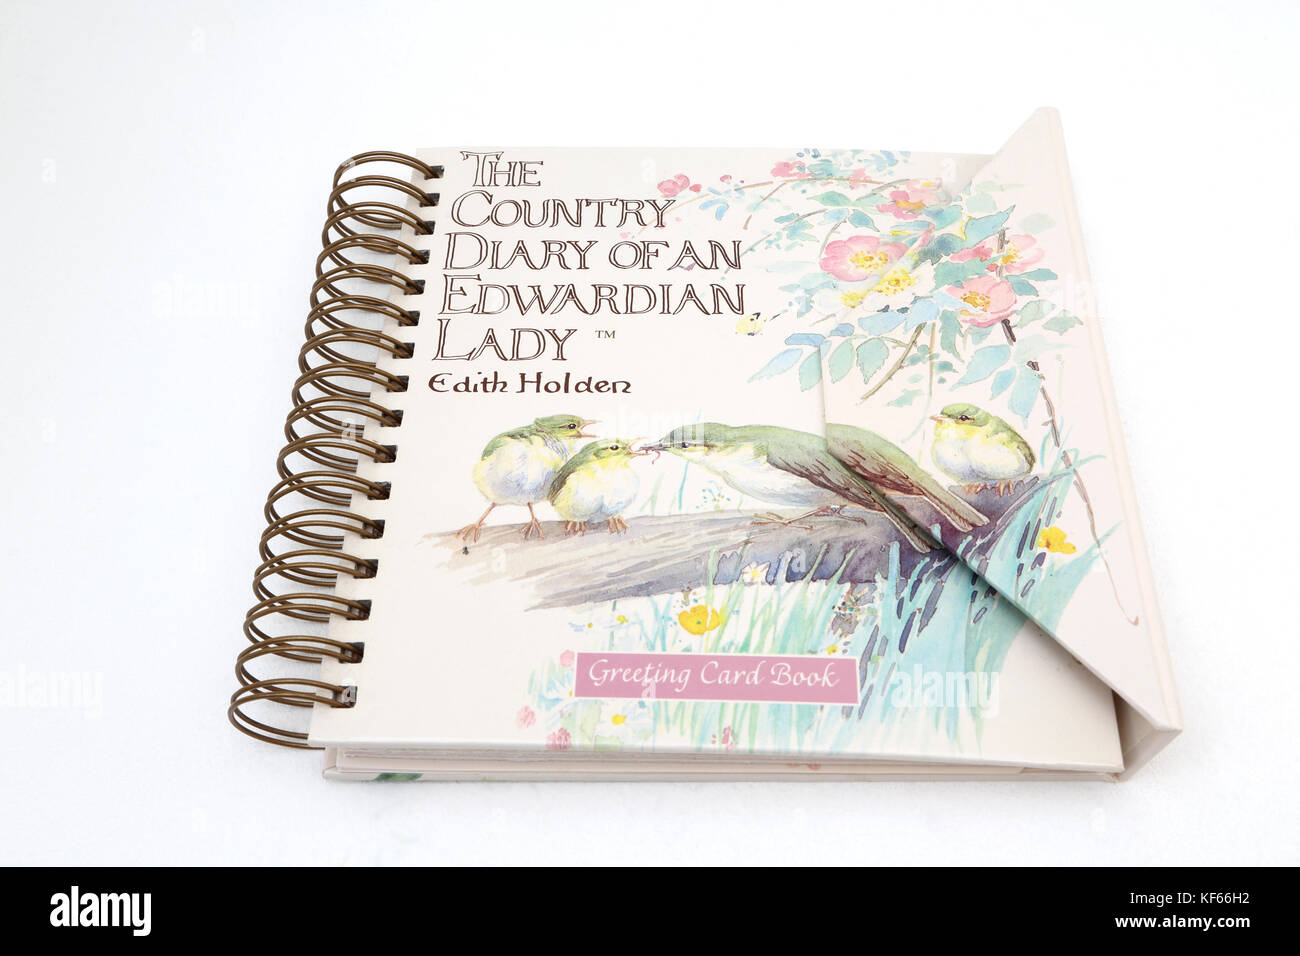 Greeting Card Book A Country Diary For An Edwardian Lady - Stock Image